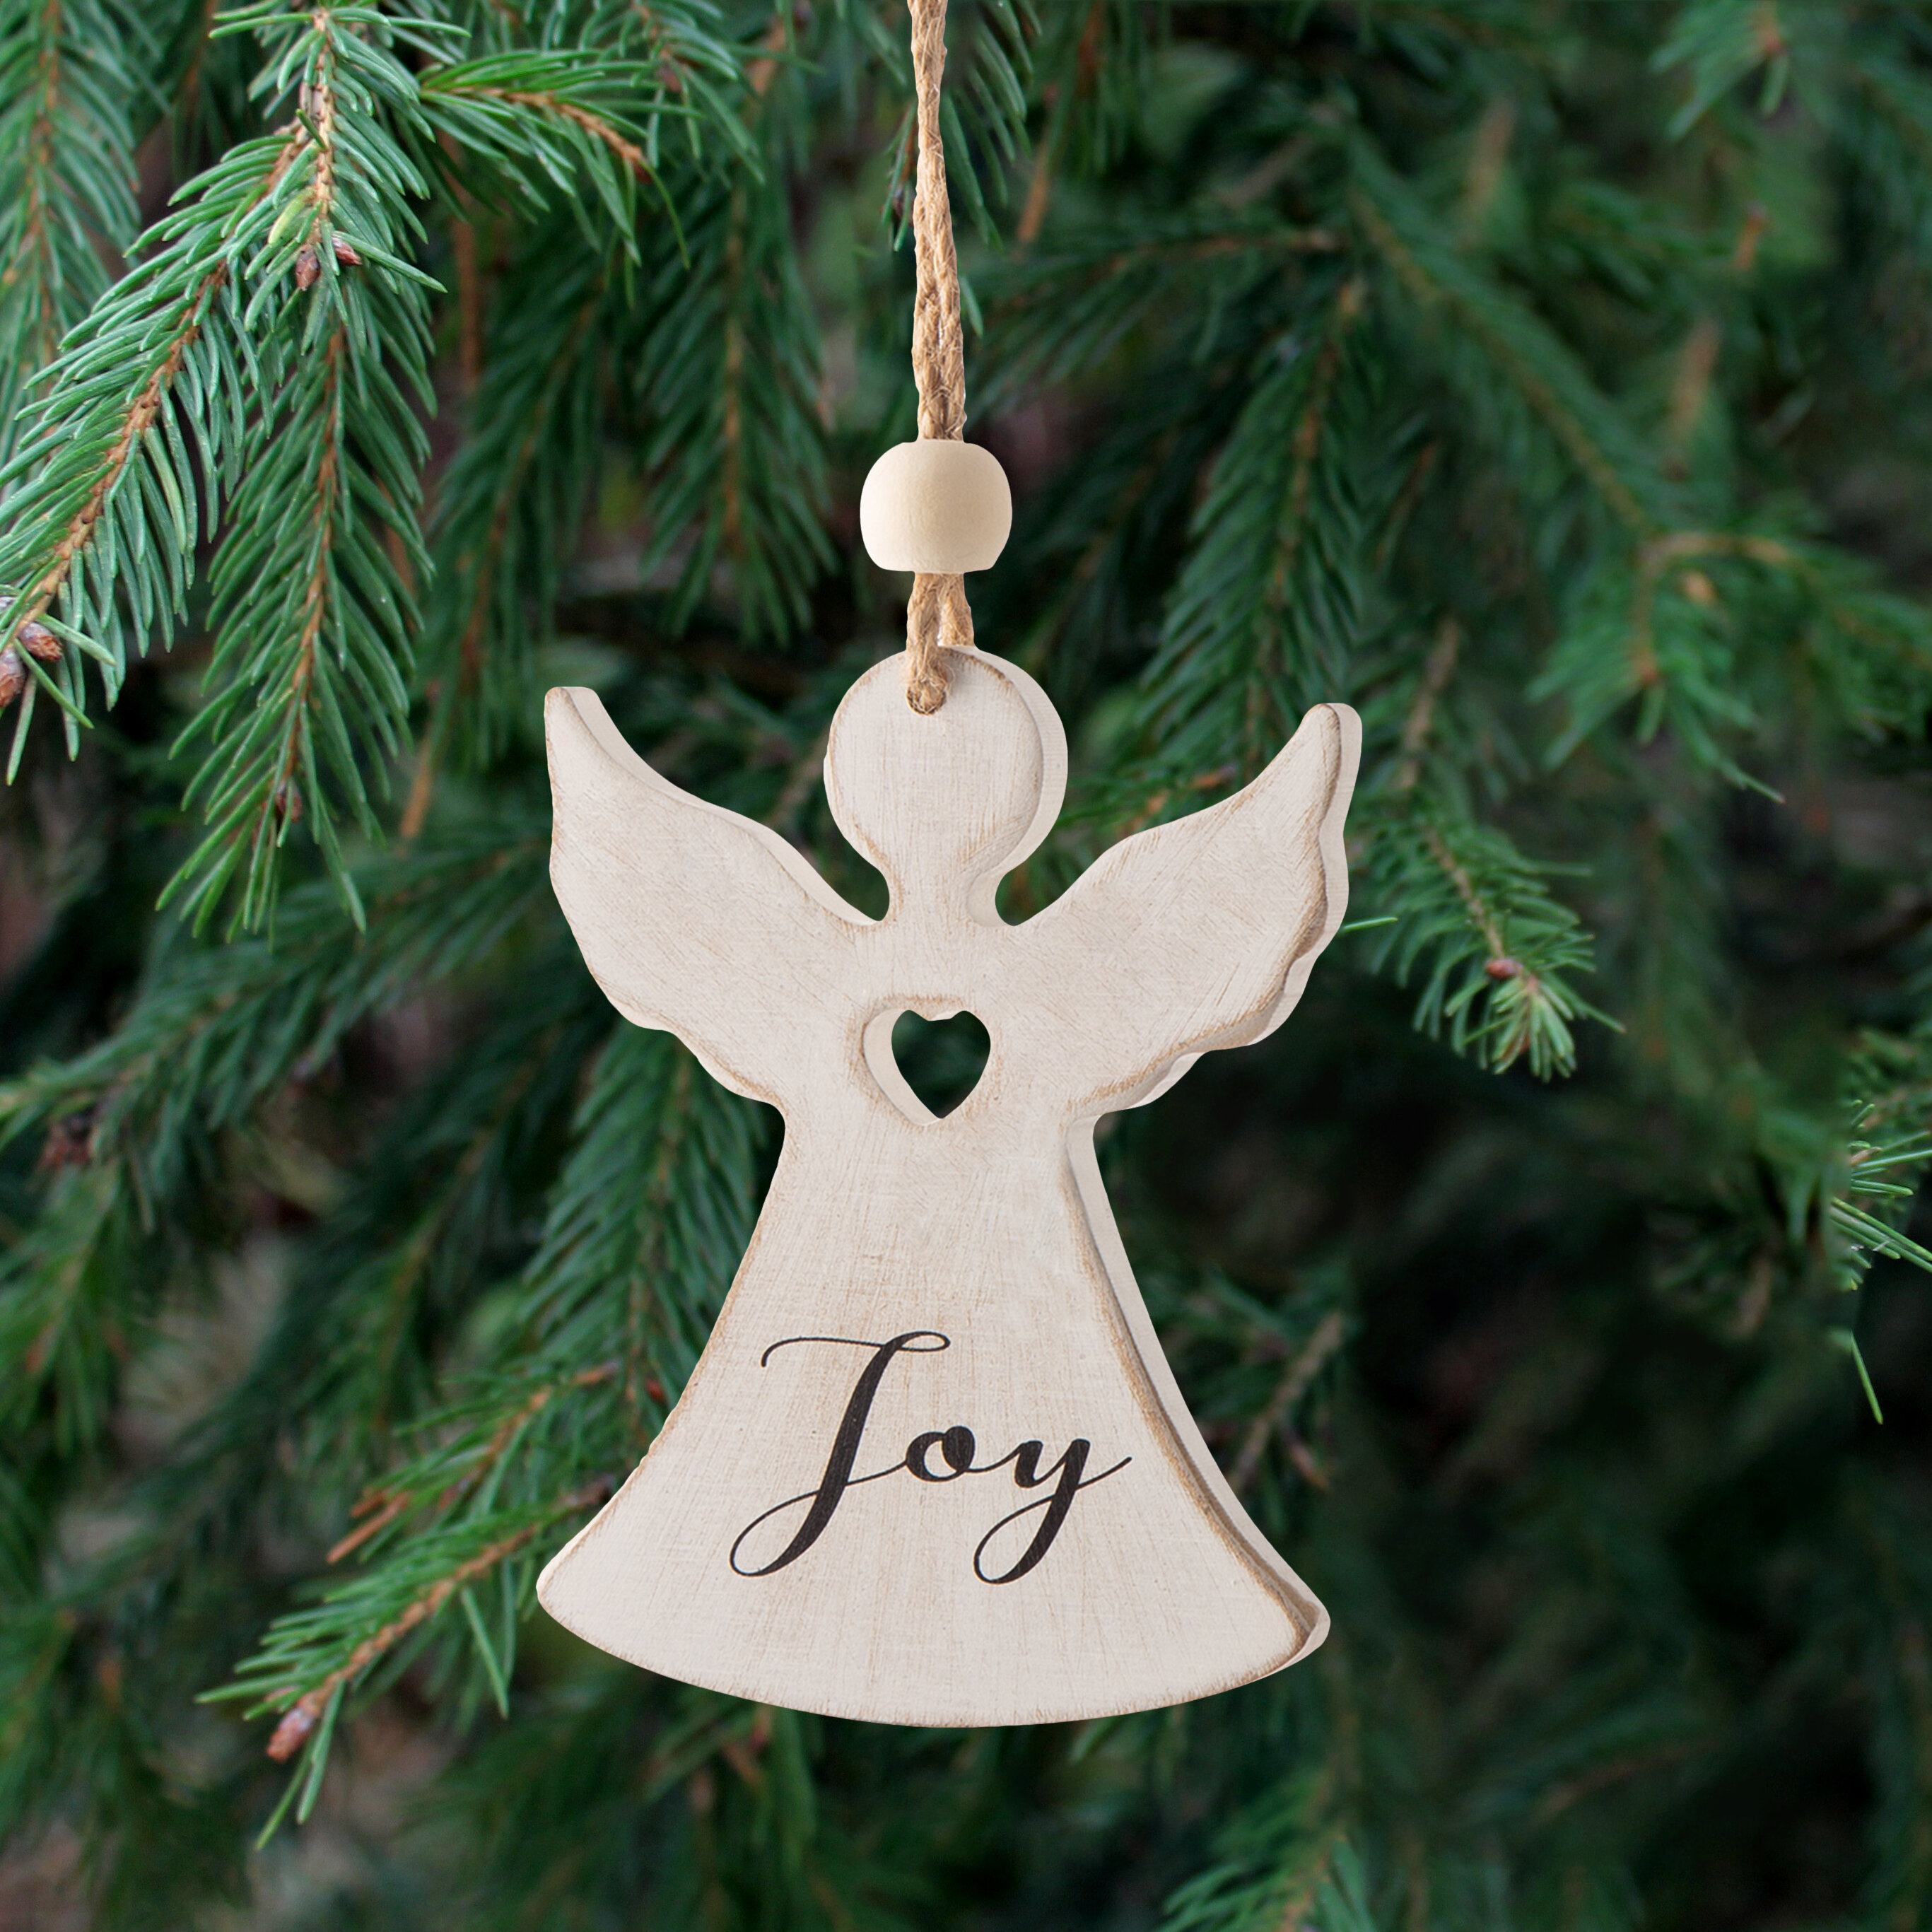 The Holiday Aisle Christmas Wood Angel Holiday Shaped Ornament Reviews Wayfair